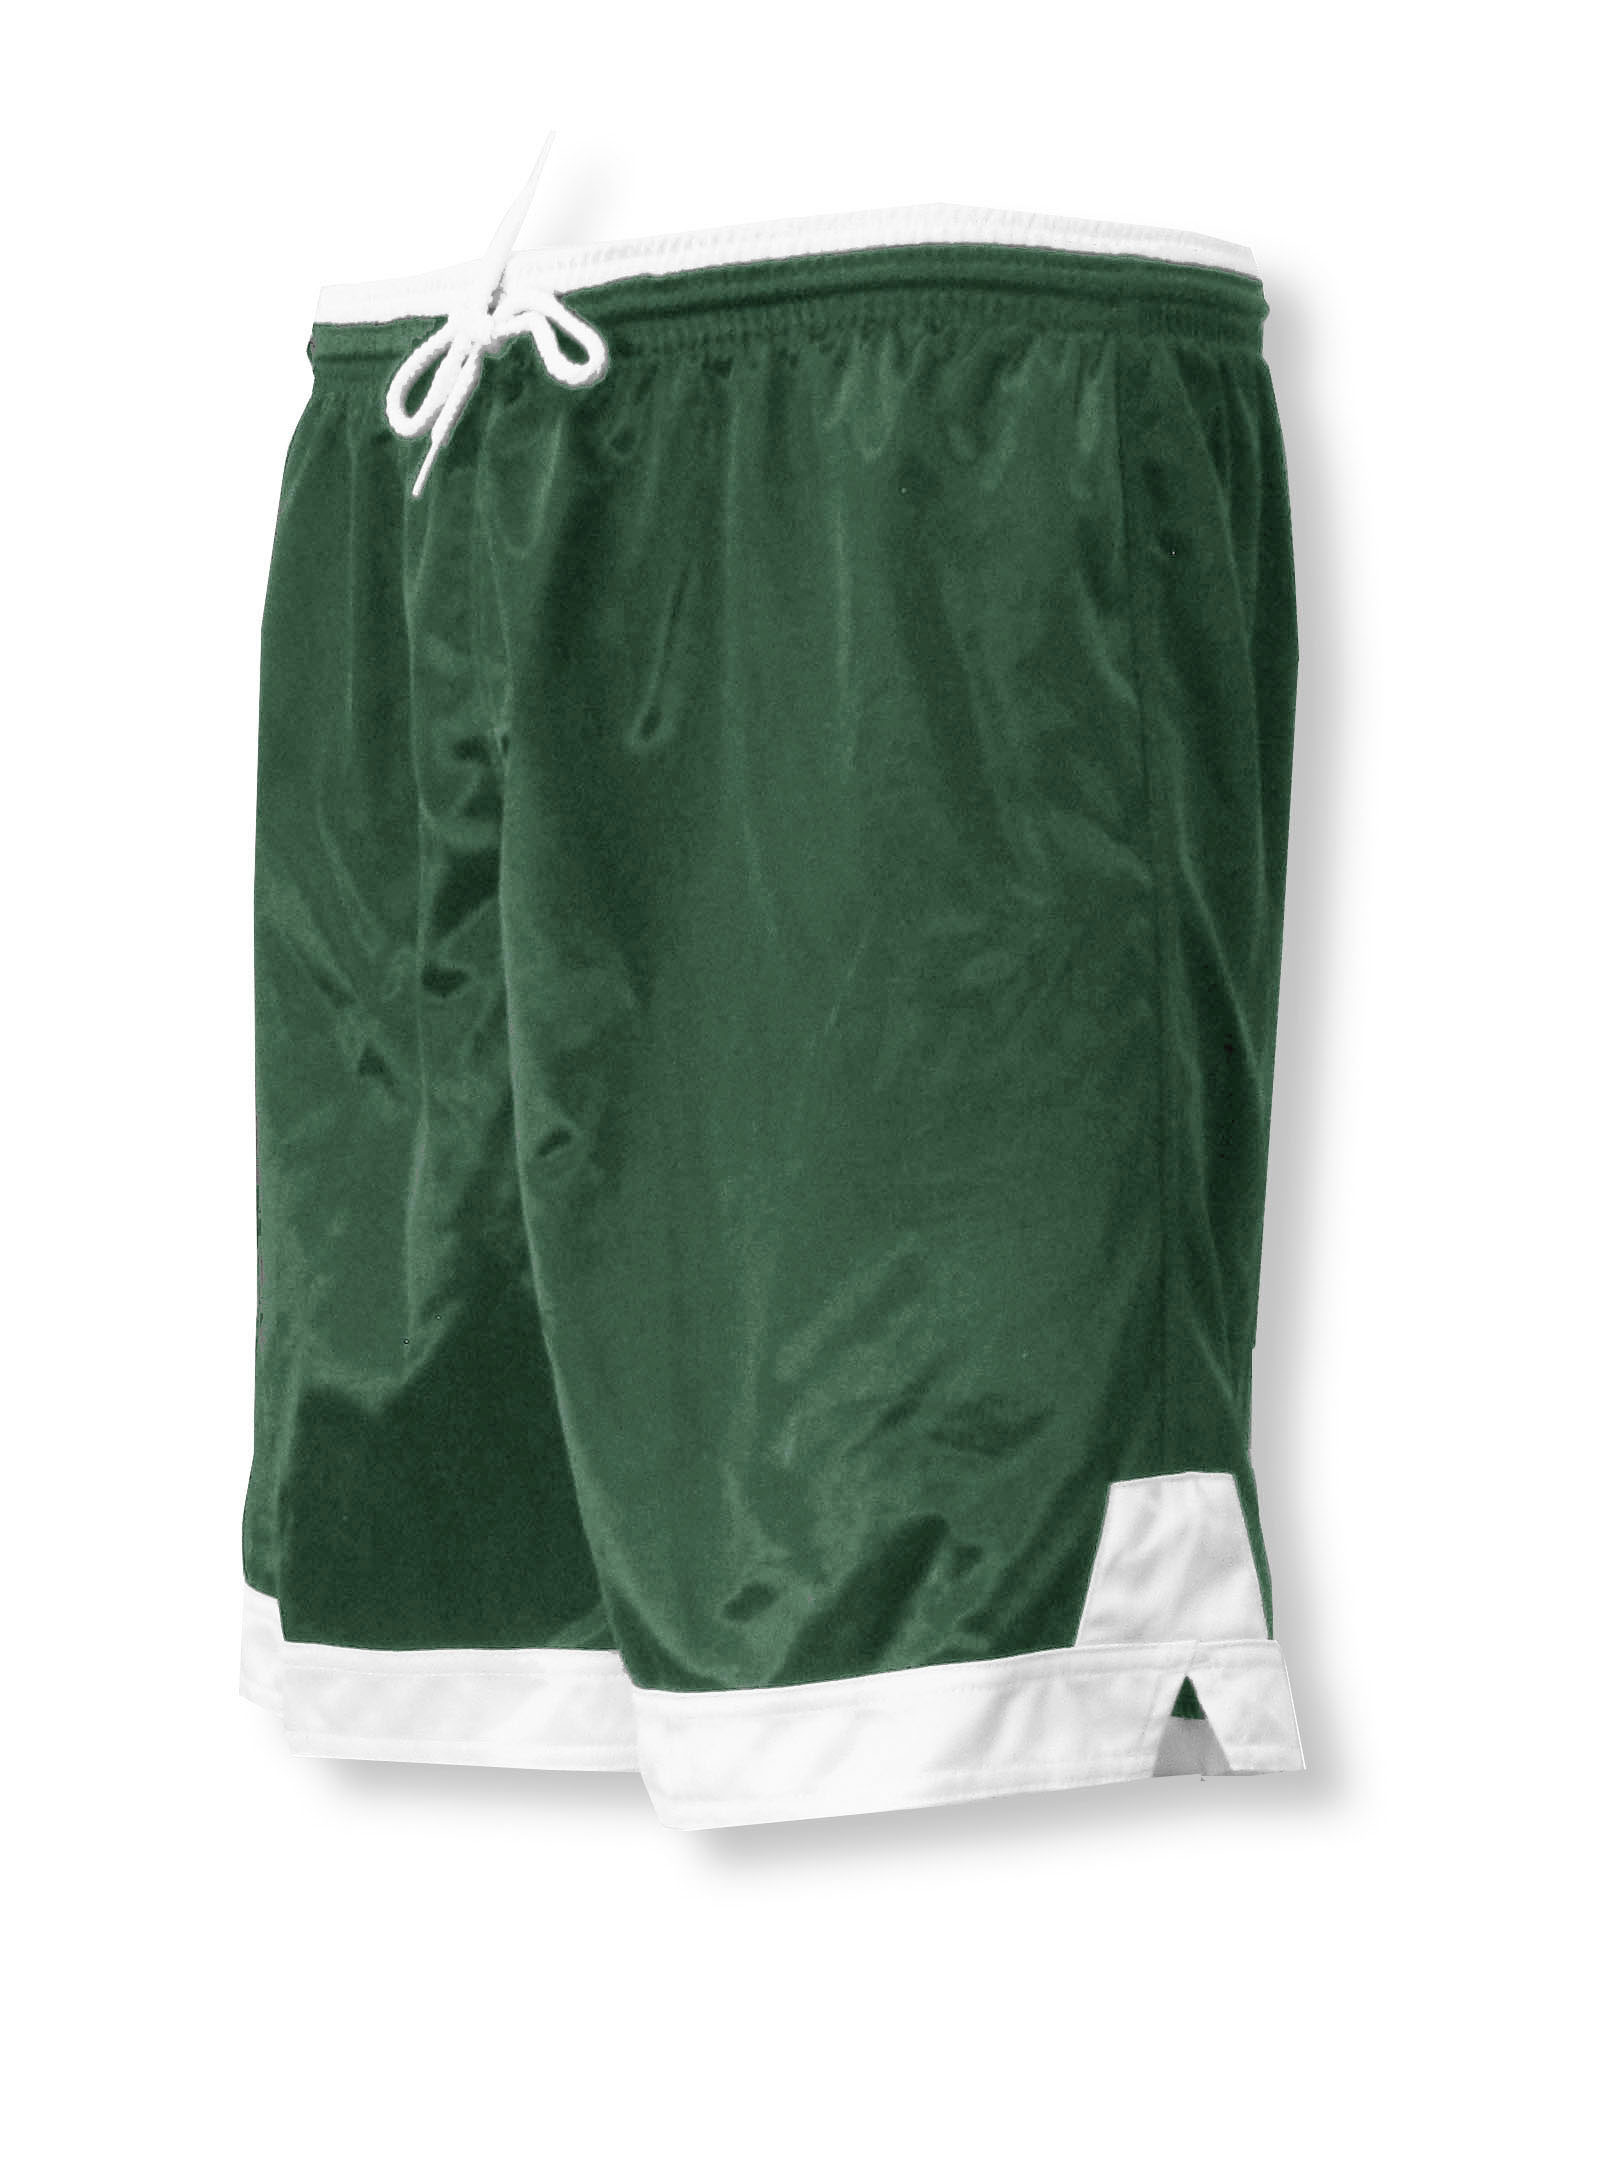 Winchester soccer shorts in forest/white by Code Four Athletics